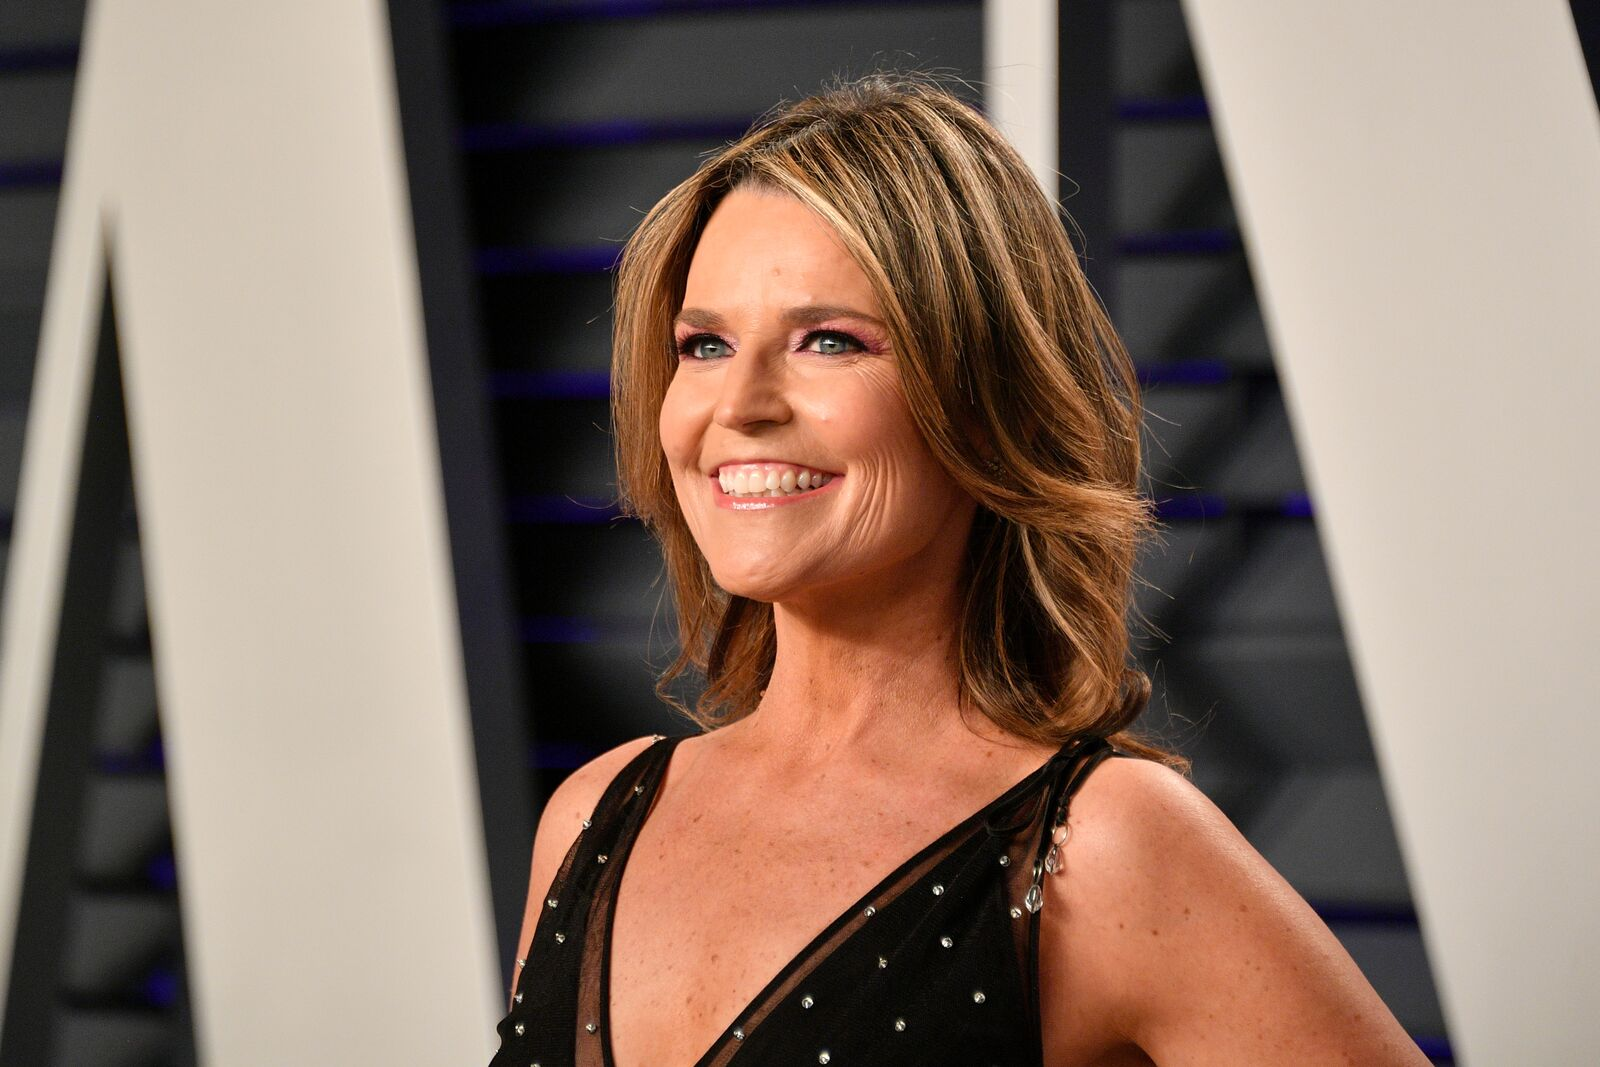 Savannah Guthrie at the Vanity Fair Oscar Party on February 24, 2019, in Beverly Hills, California | Photo: Dia Dipasupil/Getty Images